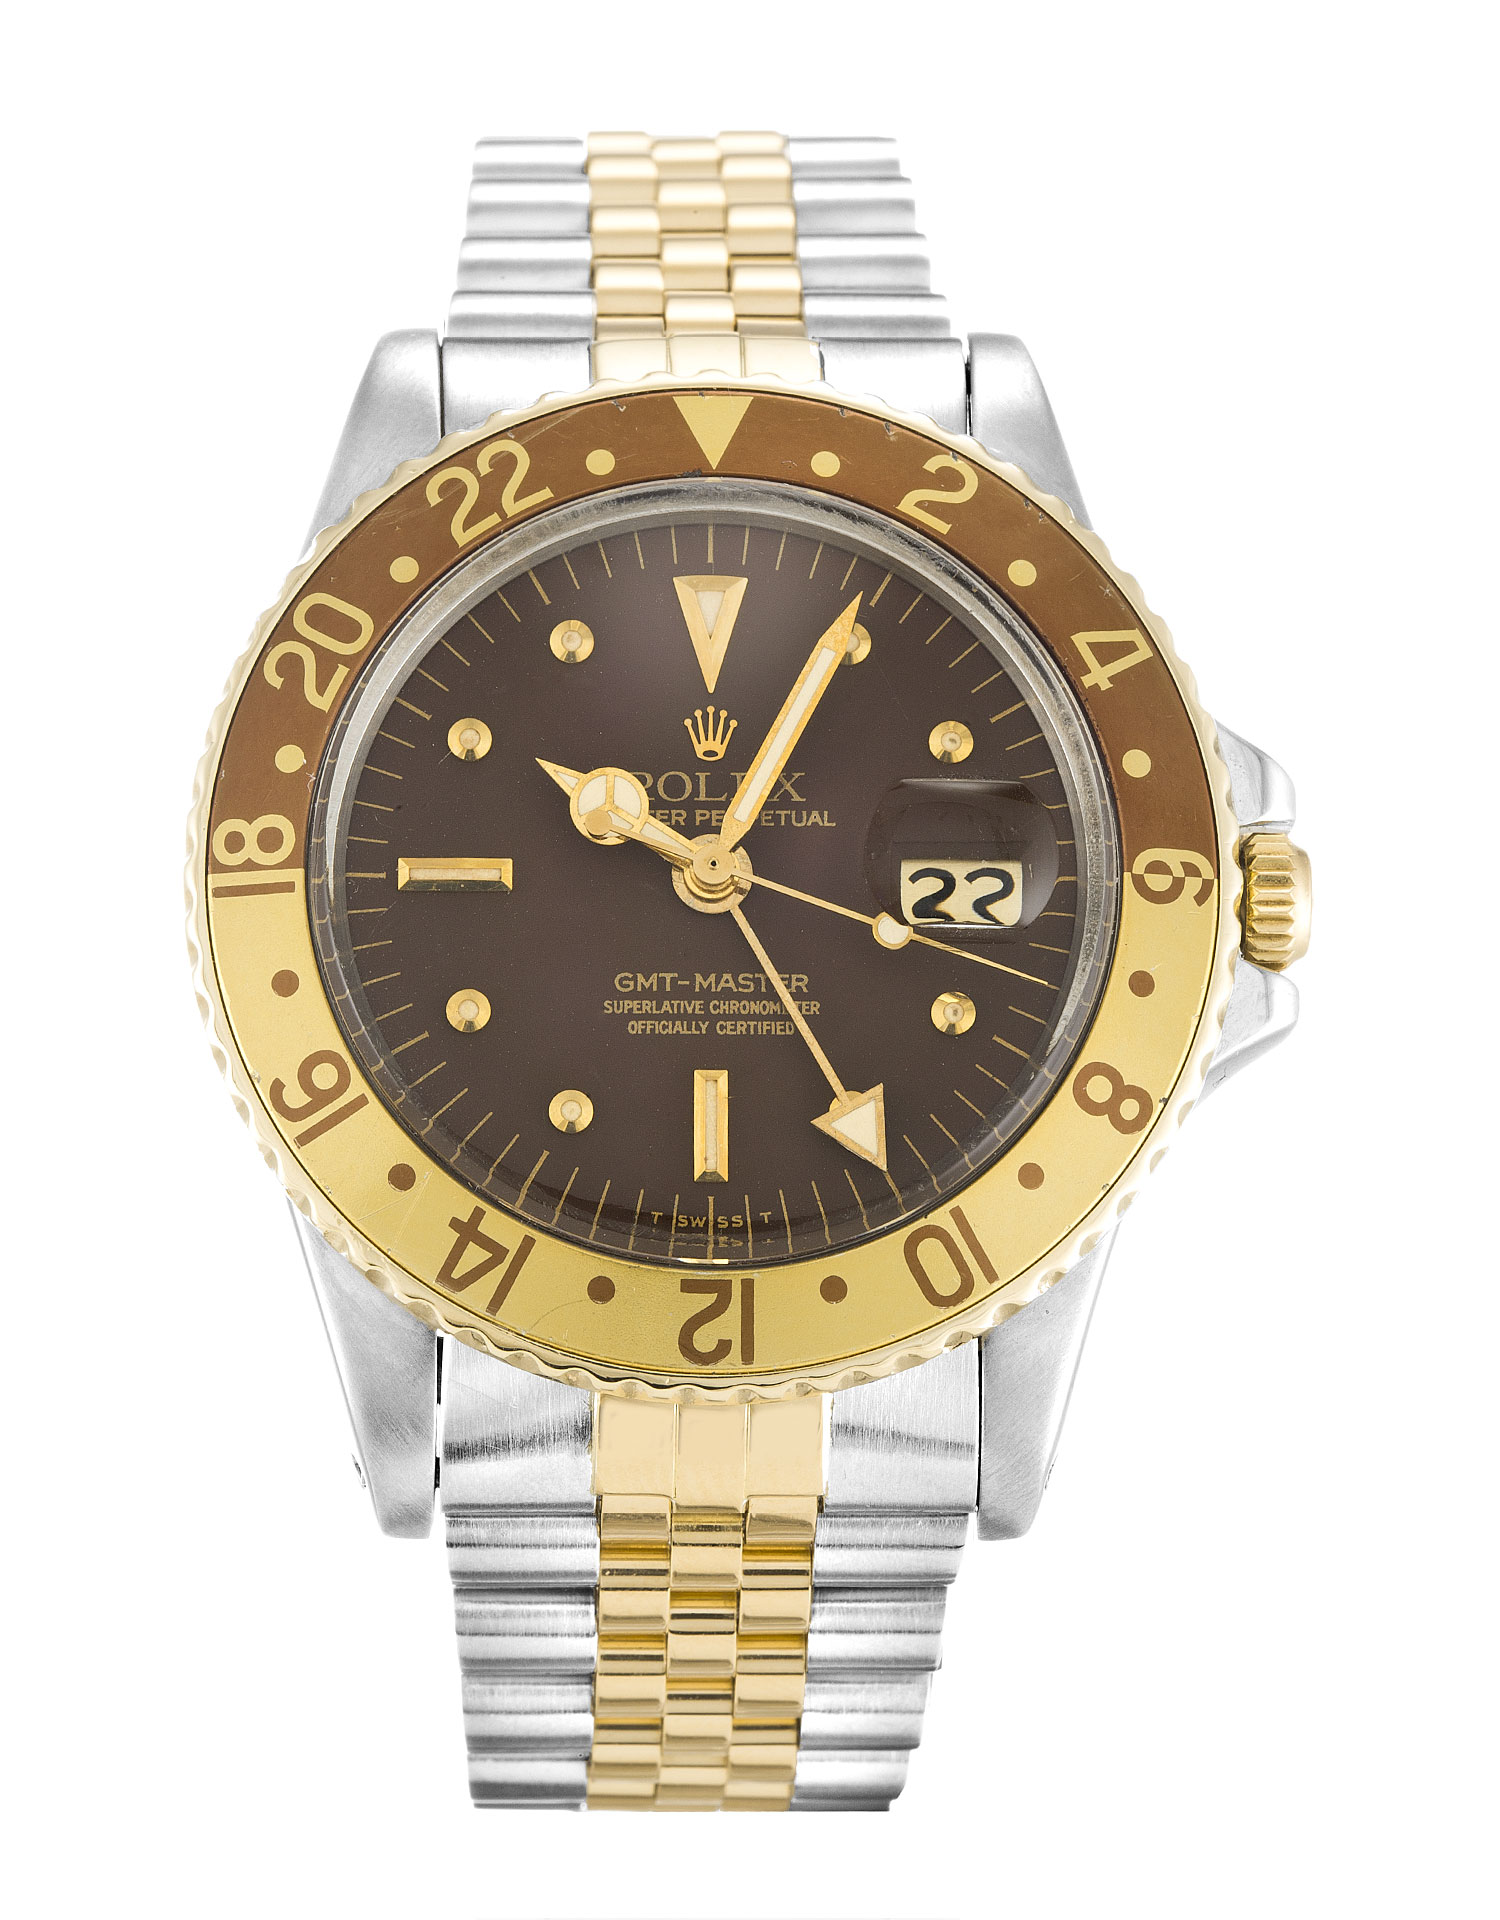 Rolex Gmt Master 1675 Mens 40 Mm Steel & Yellow Gold Case Automatic Movement – iapac.to